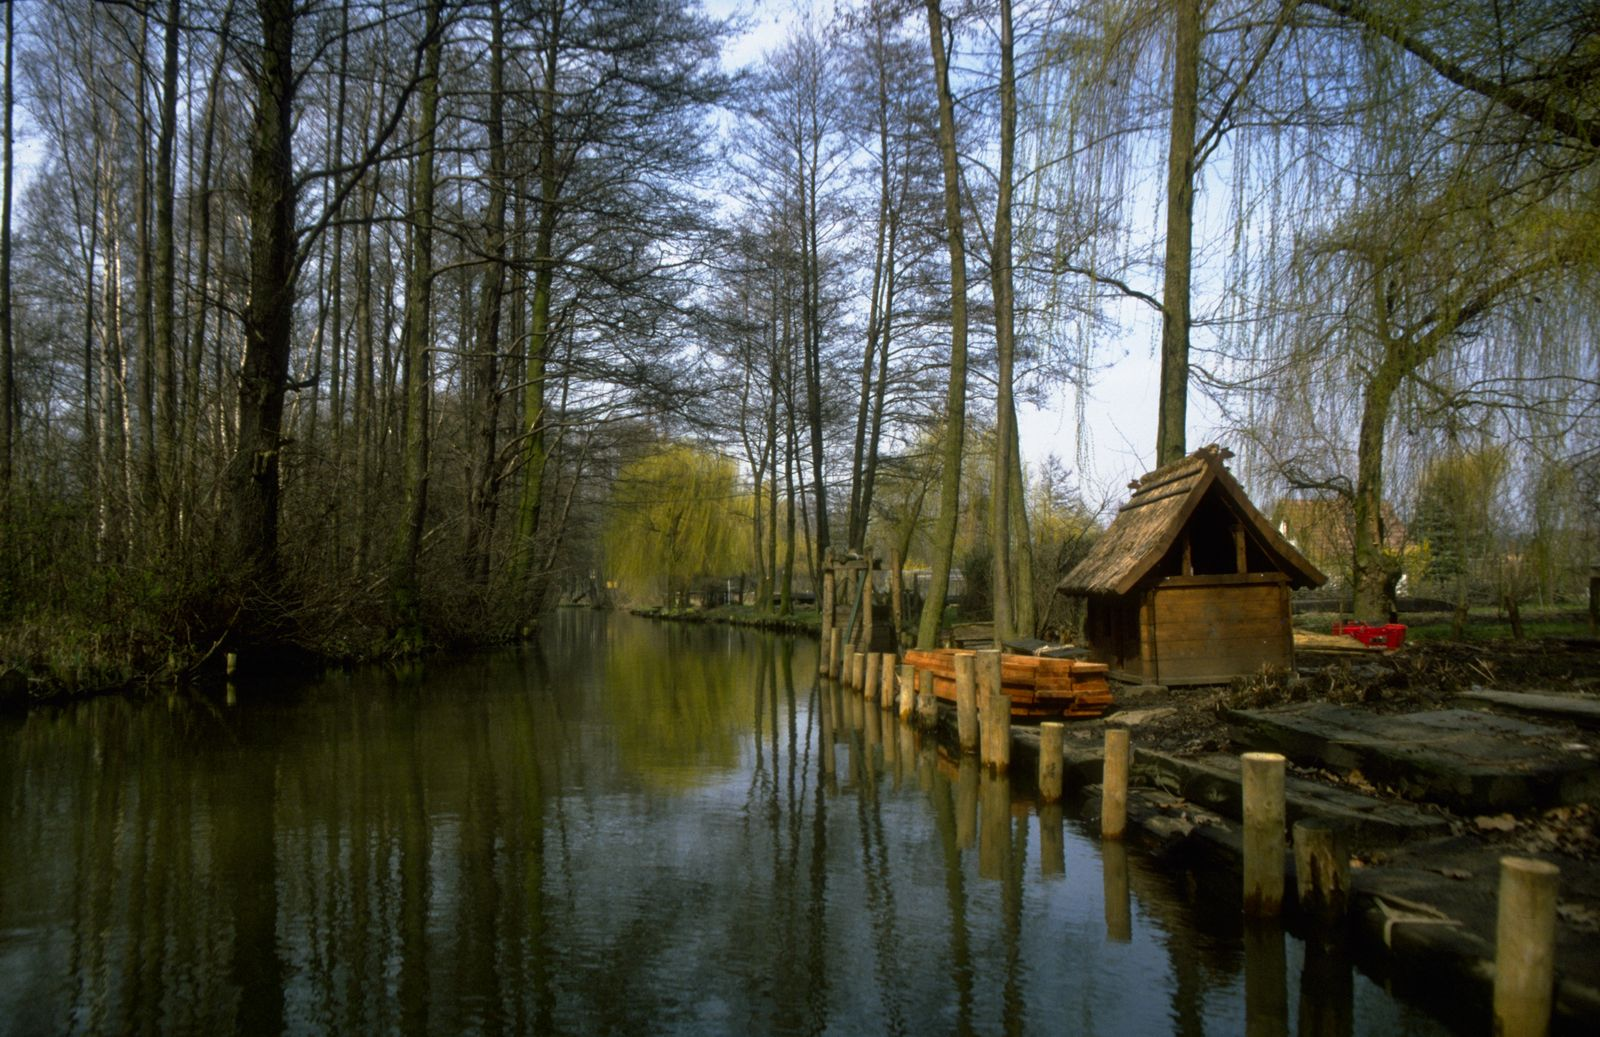 The Spreewald, south-east of Berlin